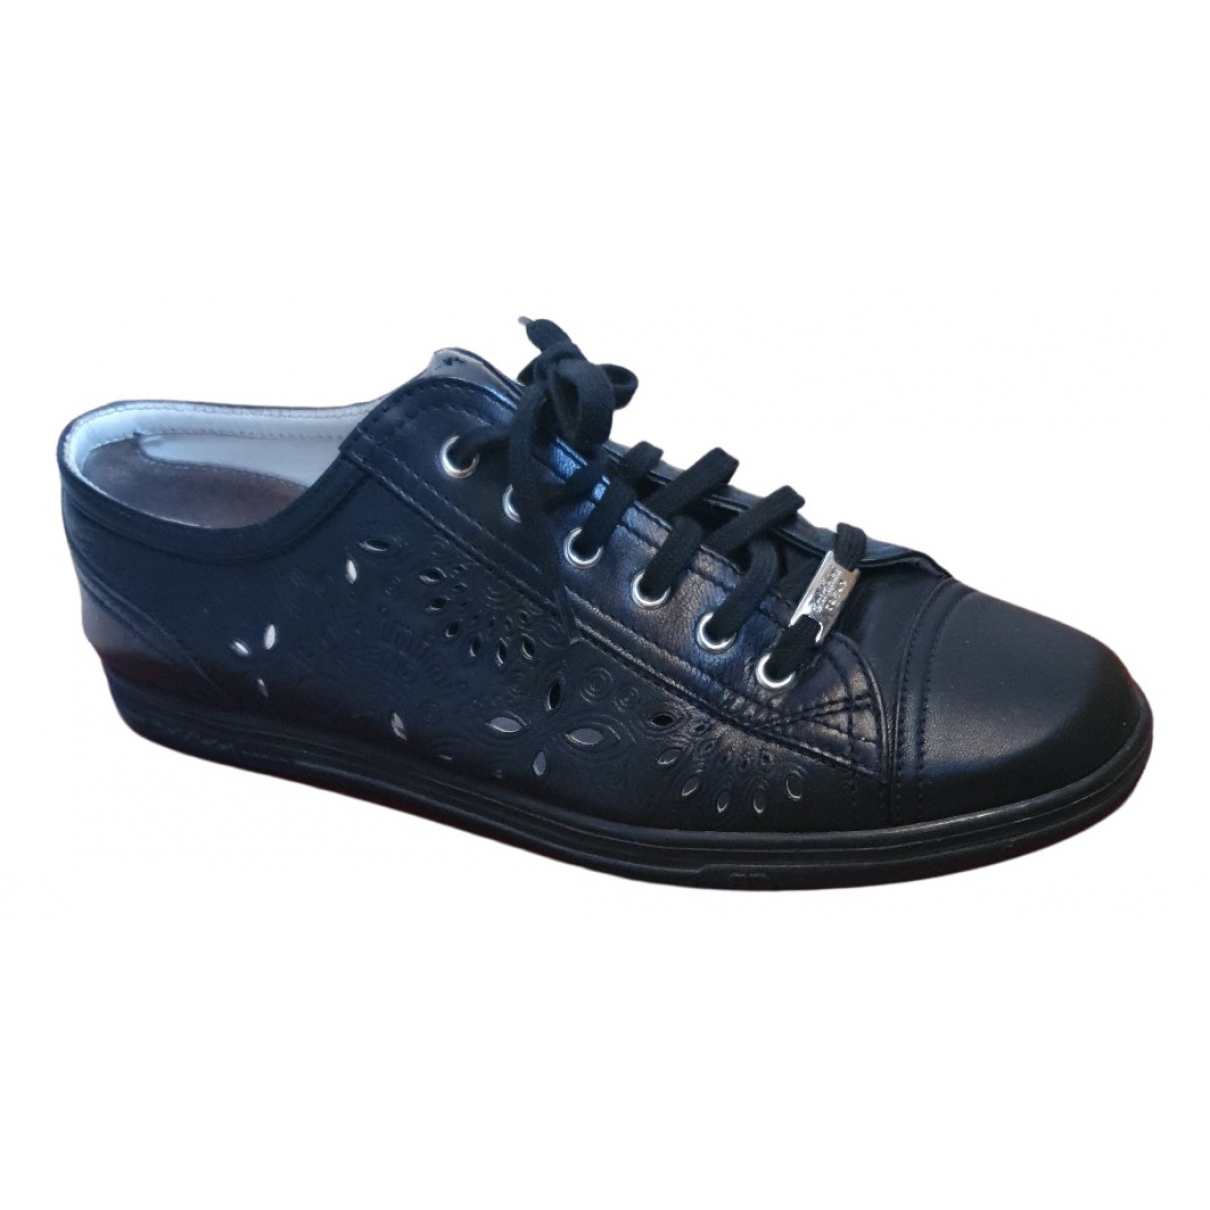 Baldinini N Black Leather Trainers for Women 40 EU